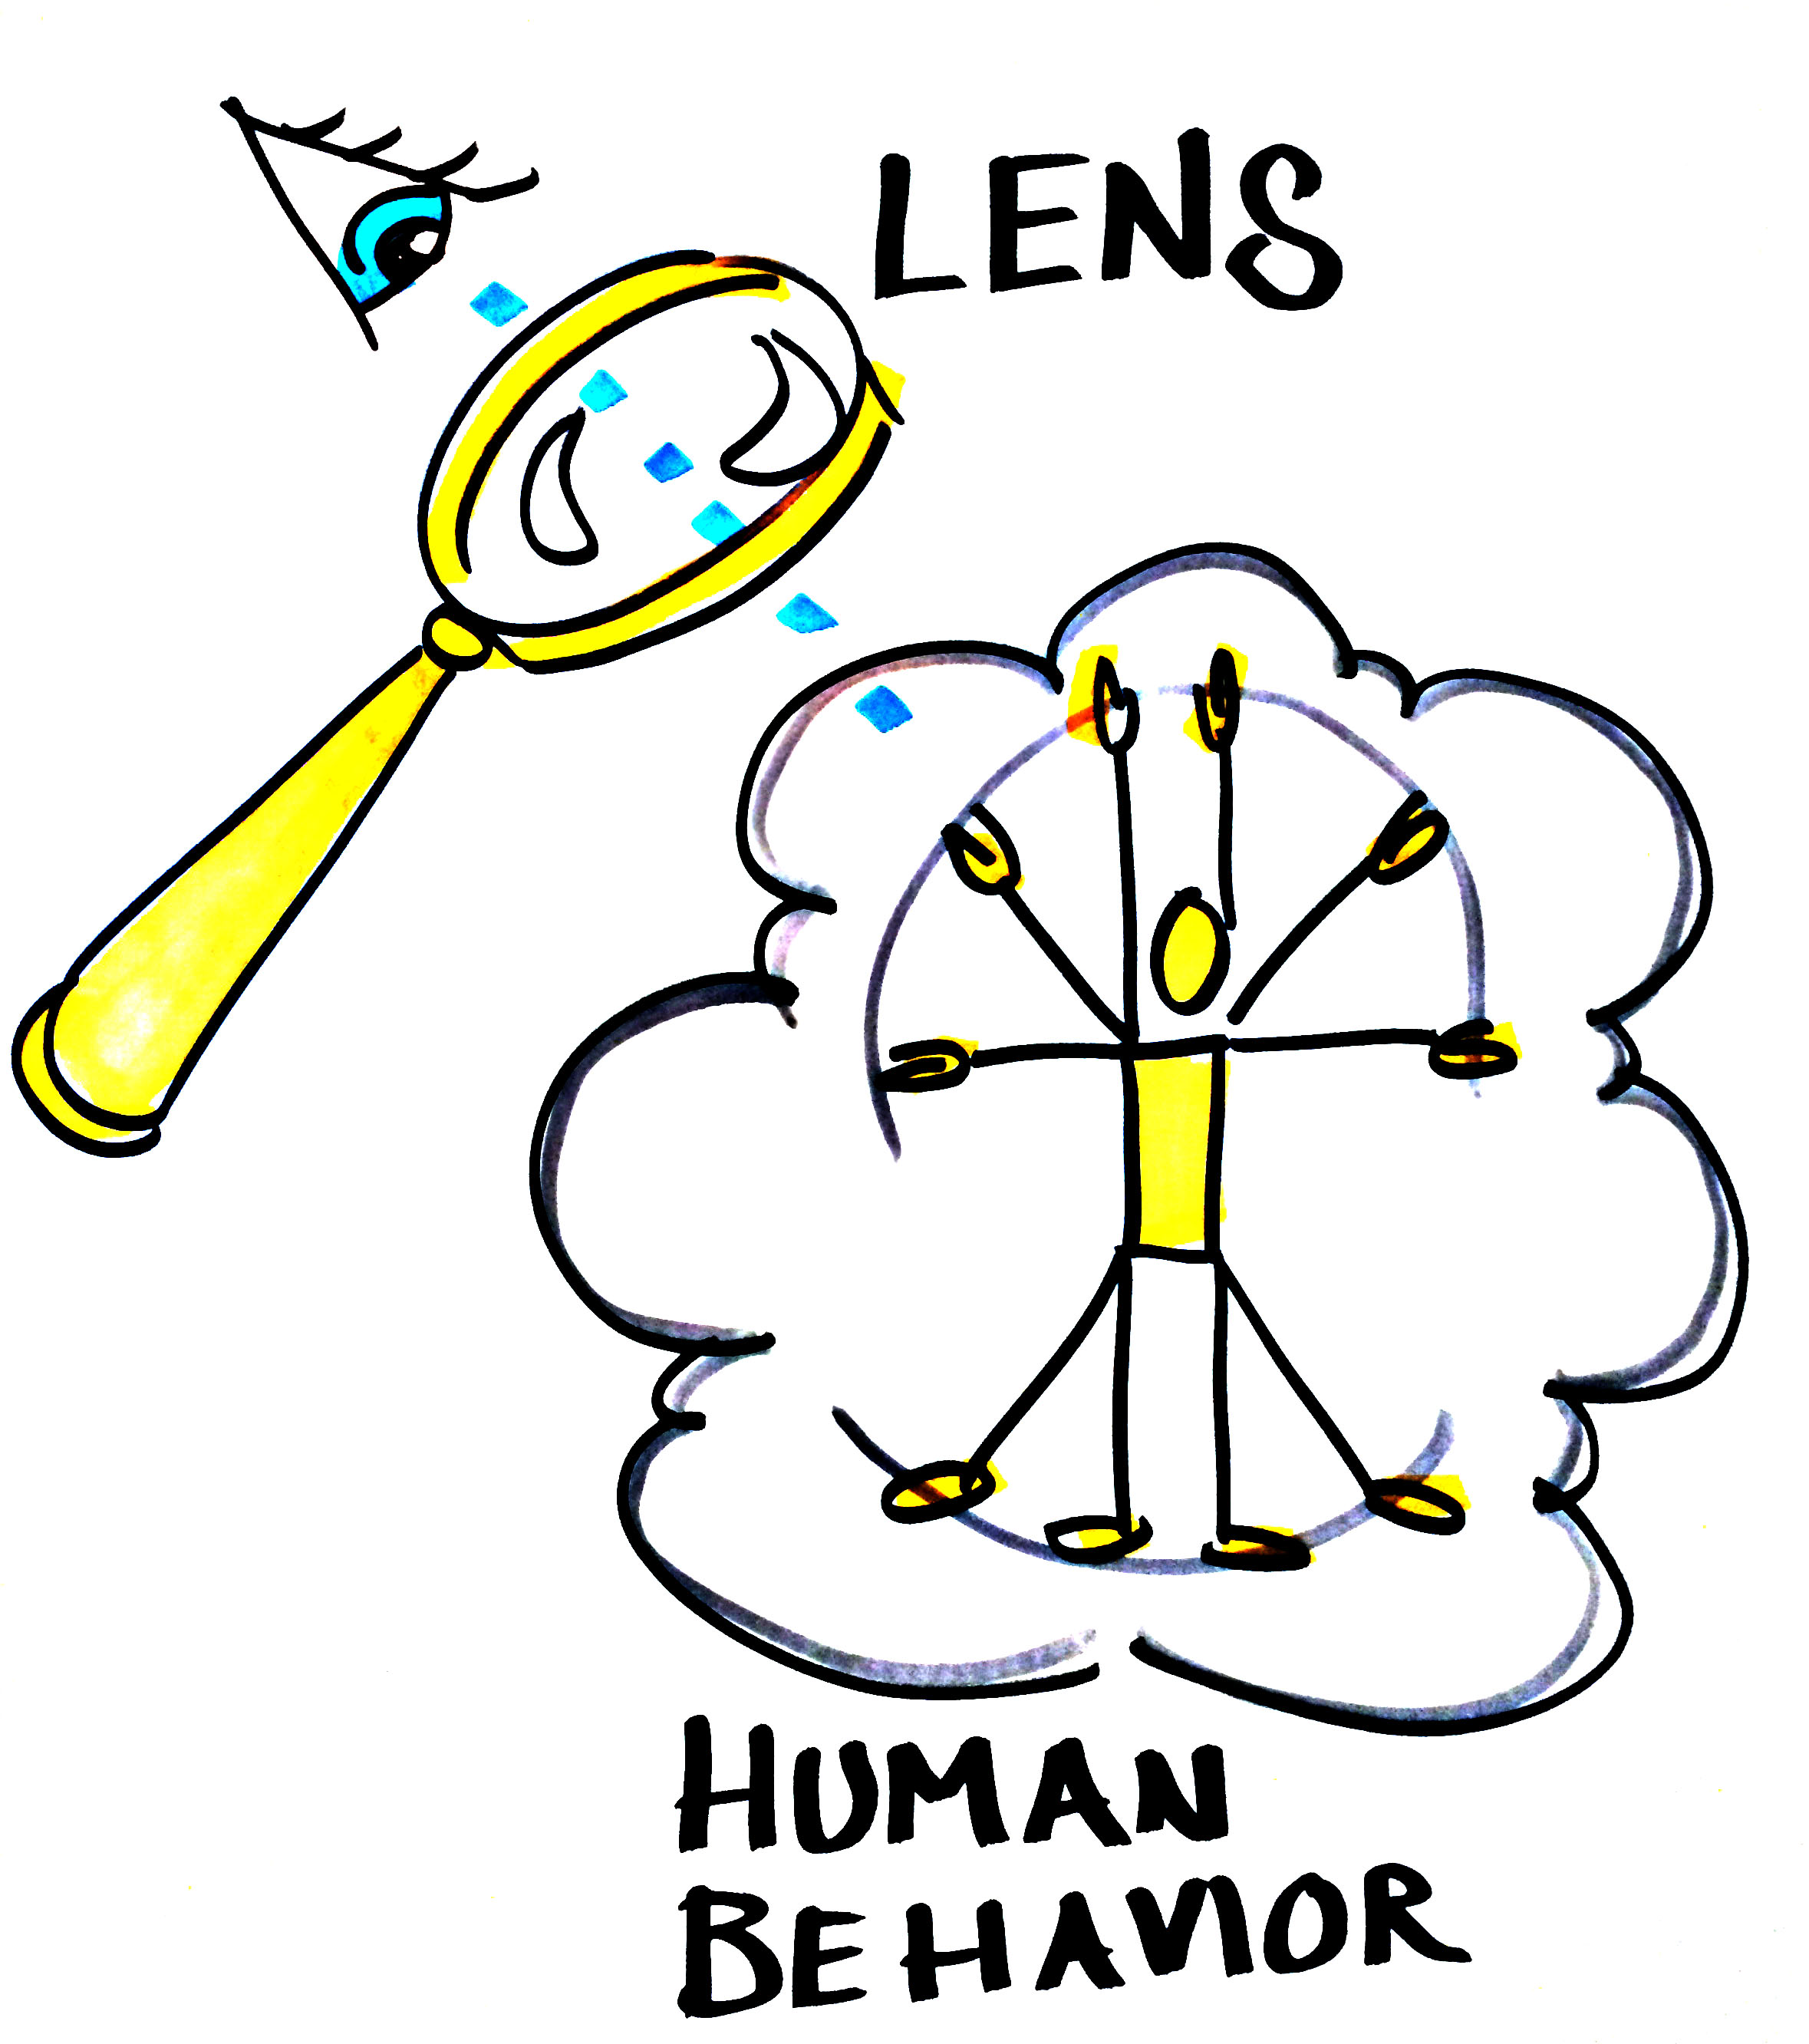 Models are simply lenses for understanding something that is fundamentally complex and ambiguous: human behavior.